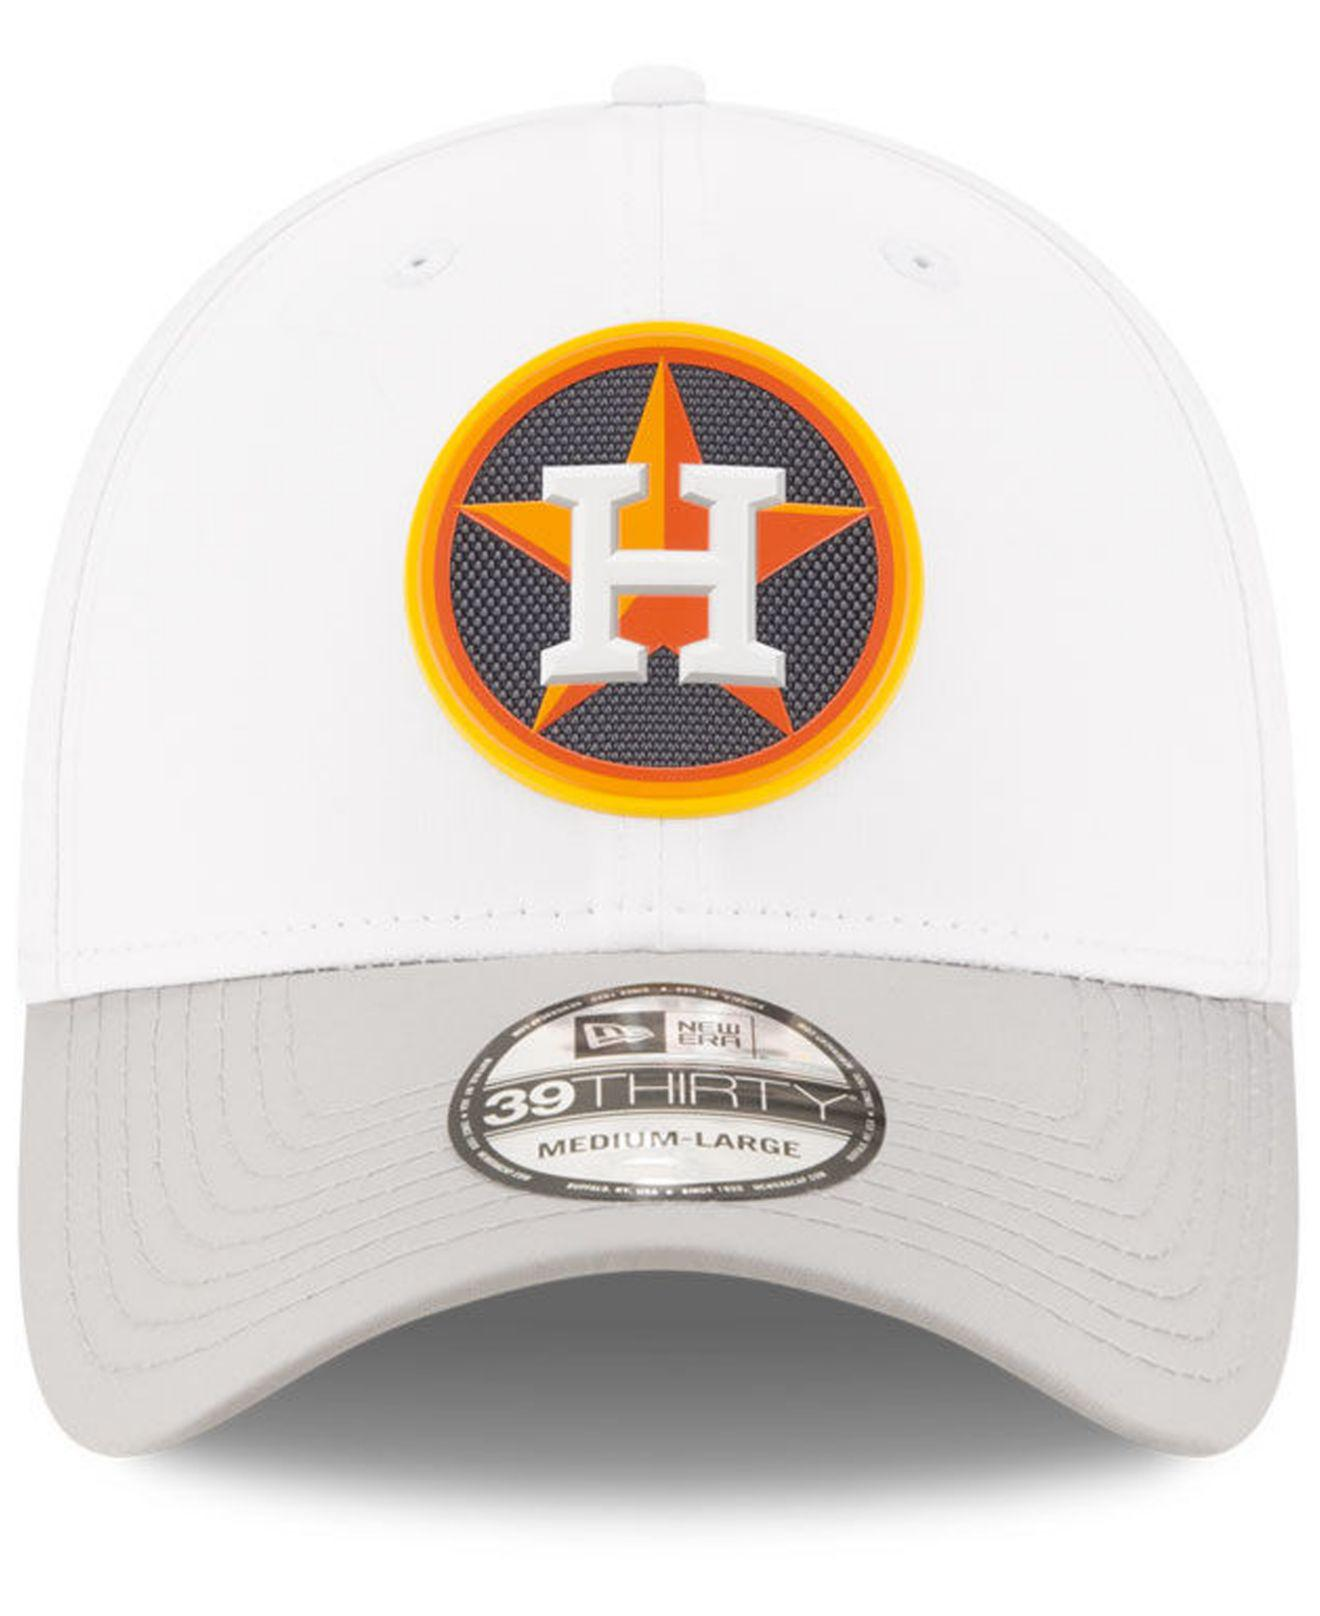 low priced aa48d 2ab52 ... canada lyst ktz houston astros white batting practice 39thirty cap in  white for men 3230a 939aa